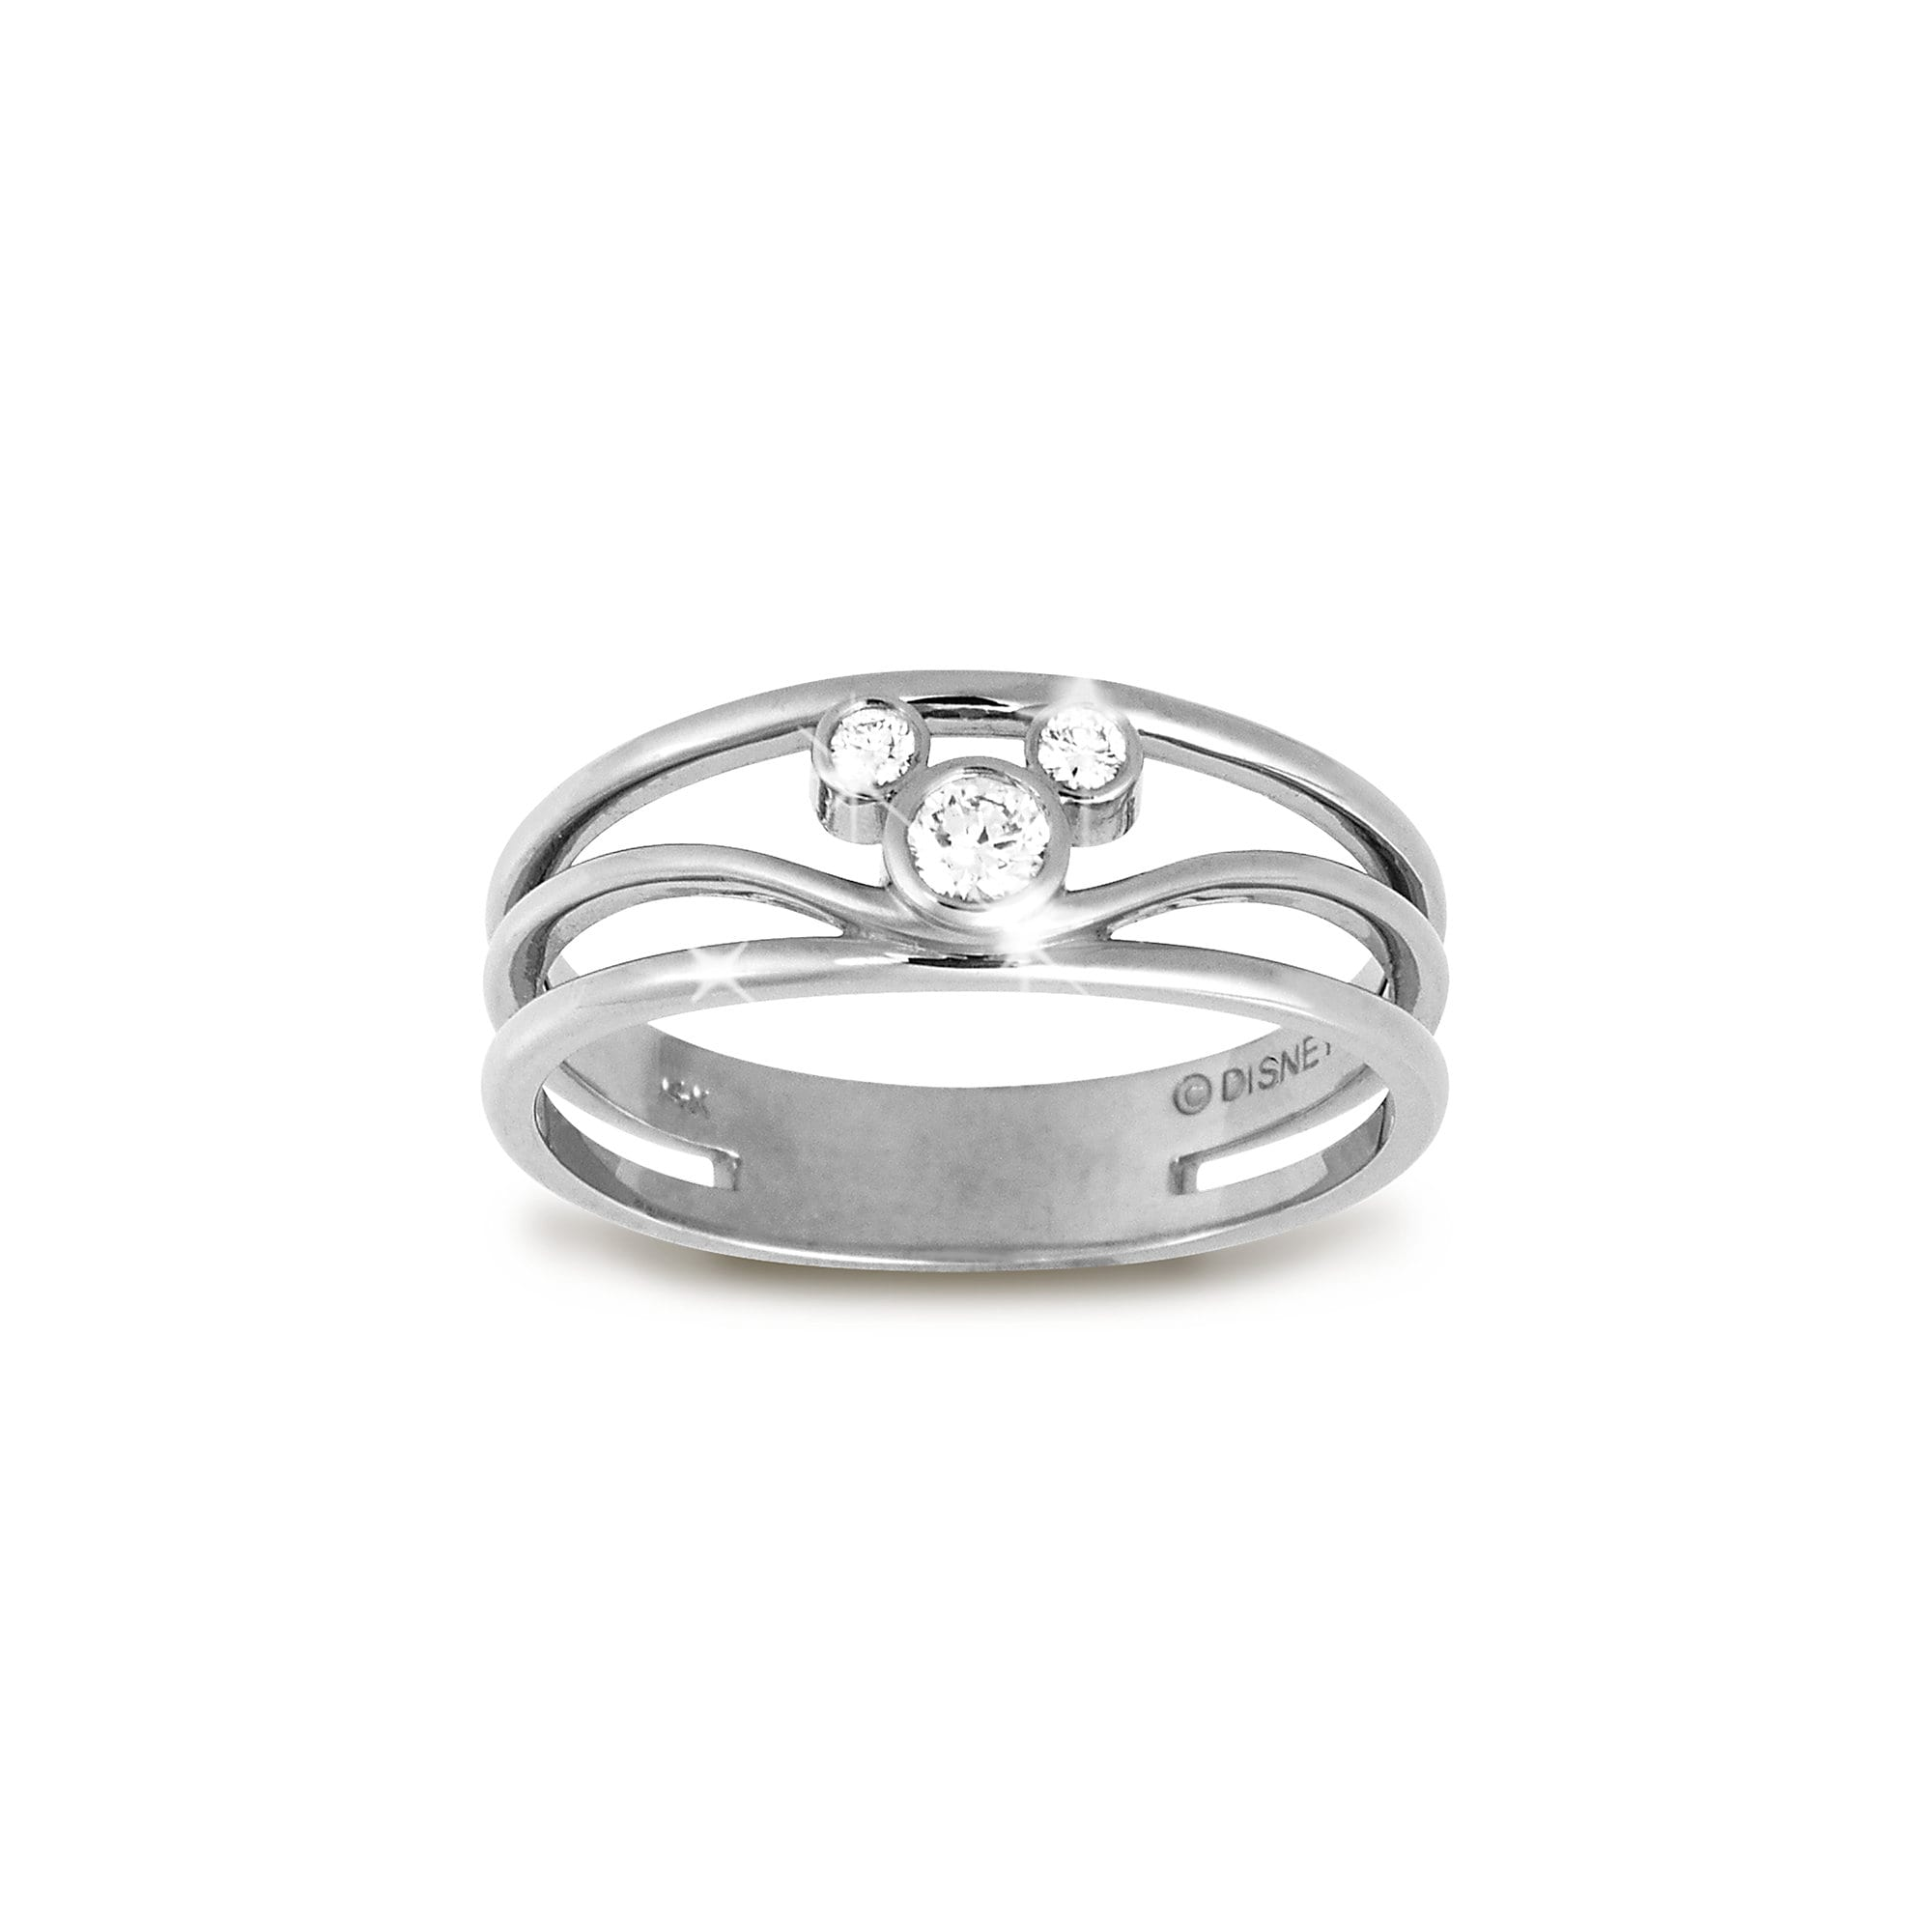 Mickey Mouse Icon Diamond Ring For Women: Minnie Mouse Wedding Ring At Websimilar.org